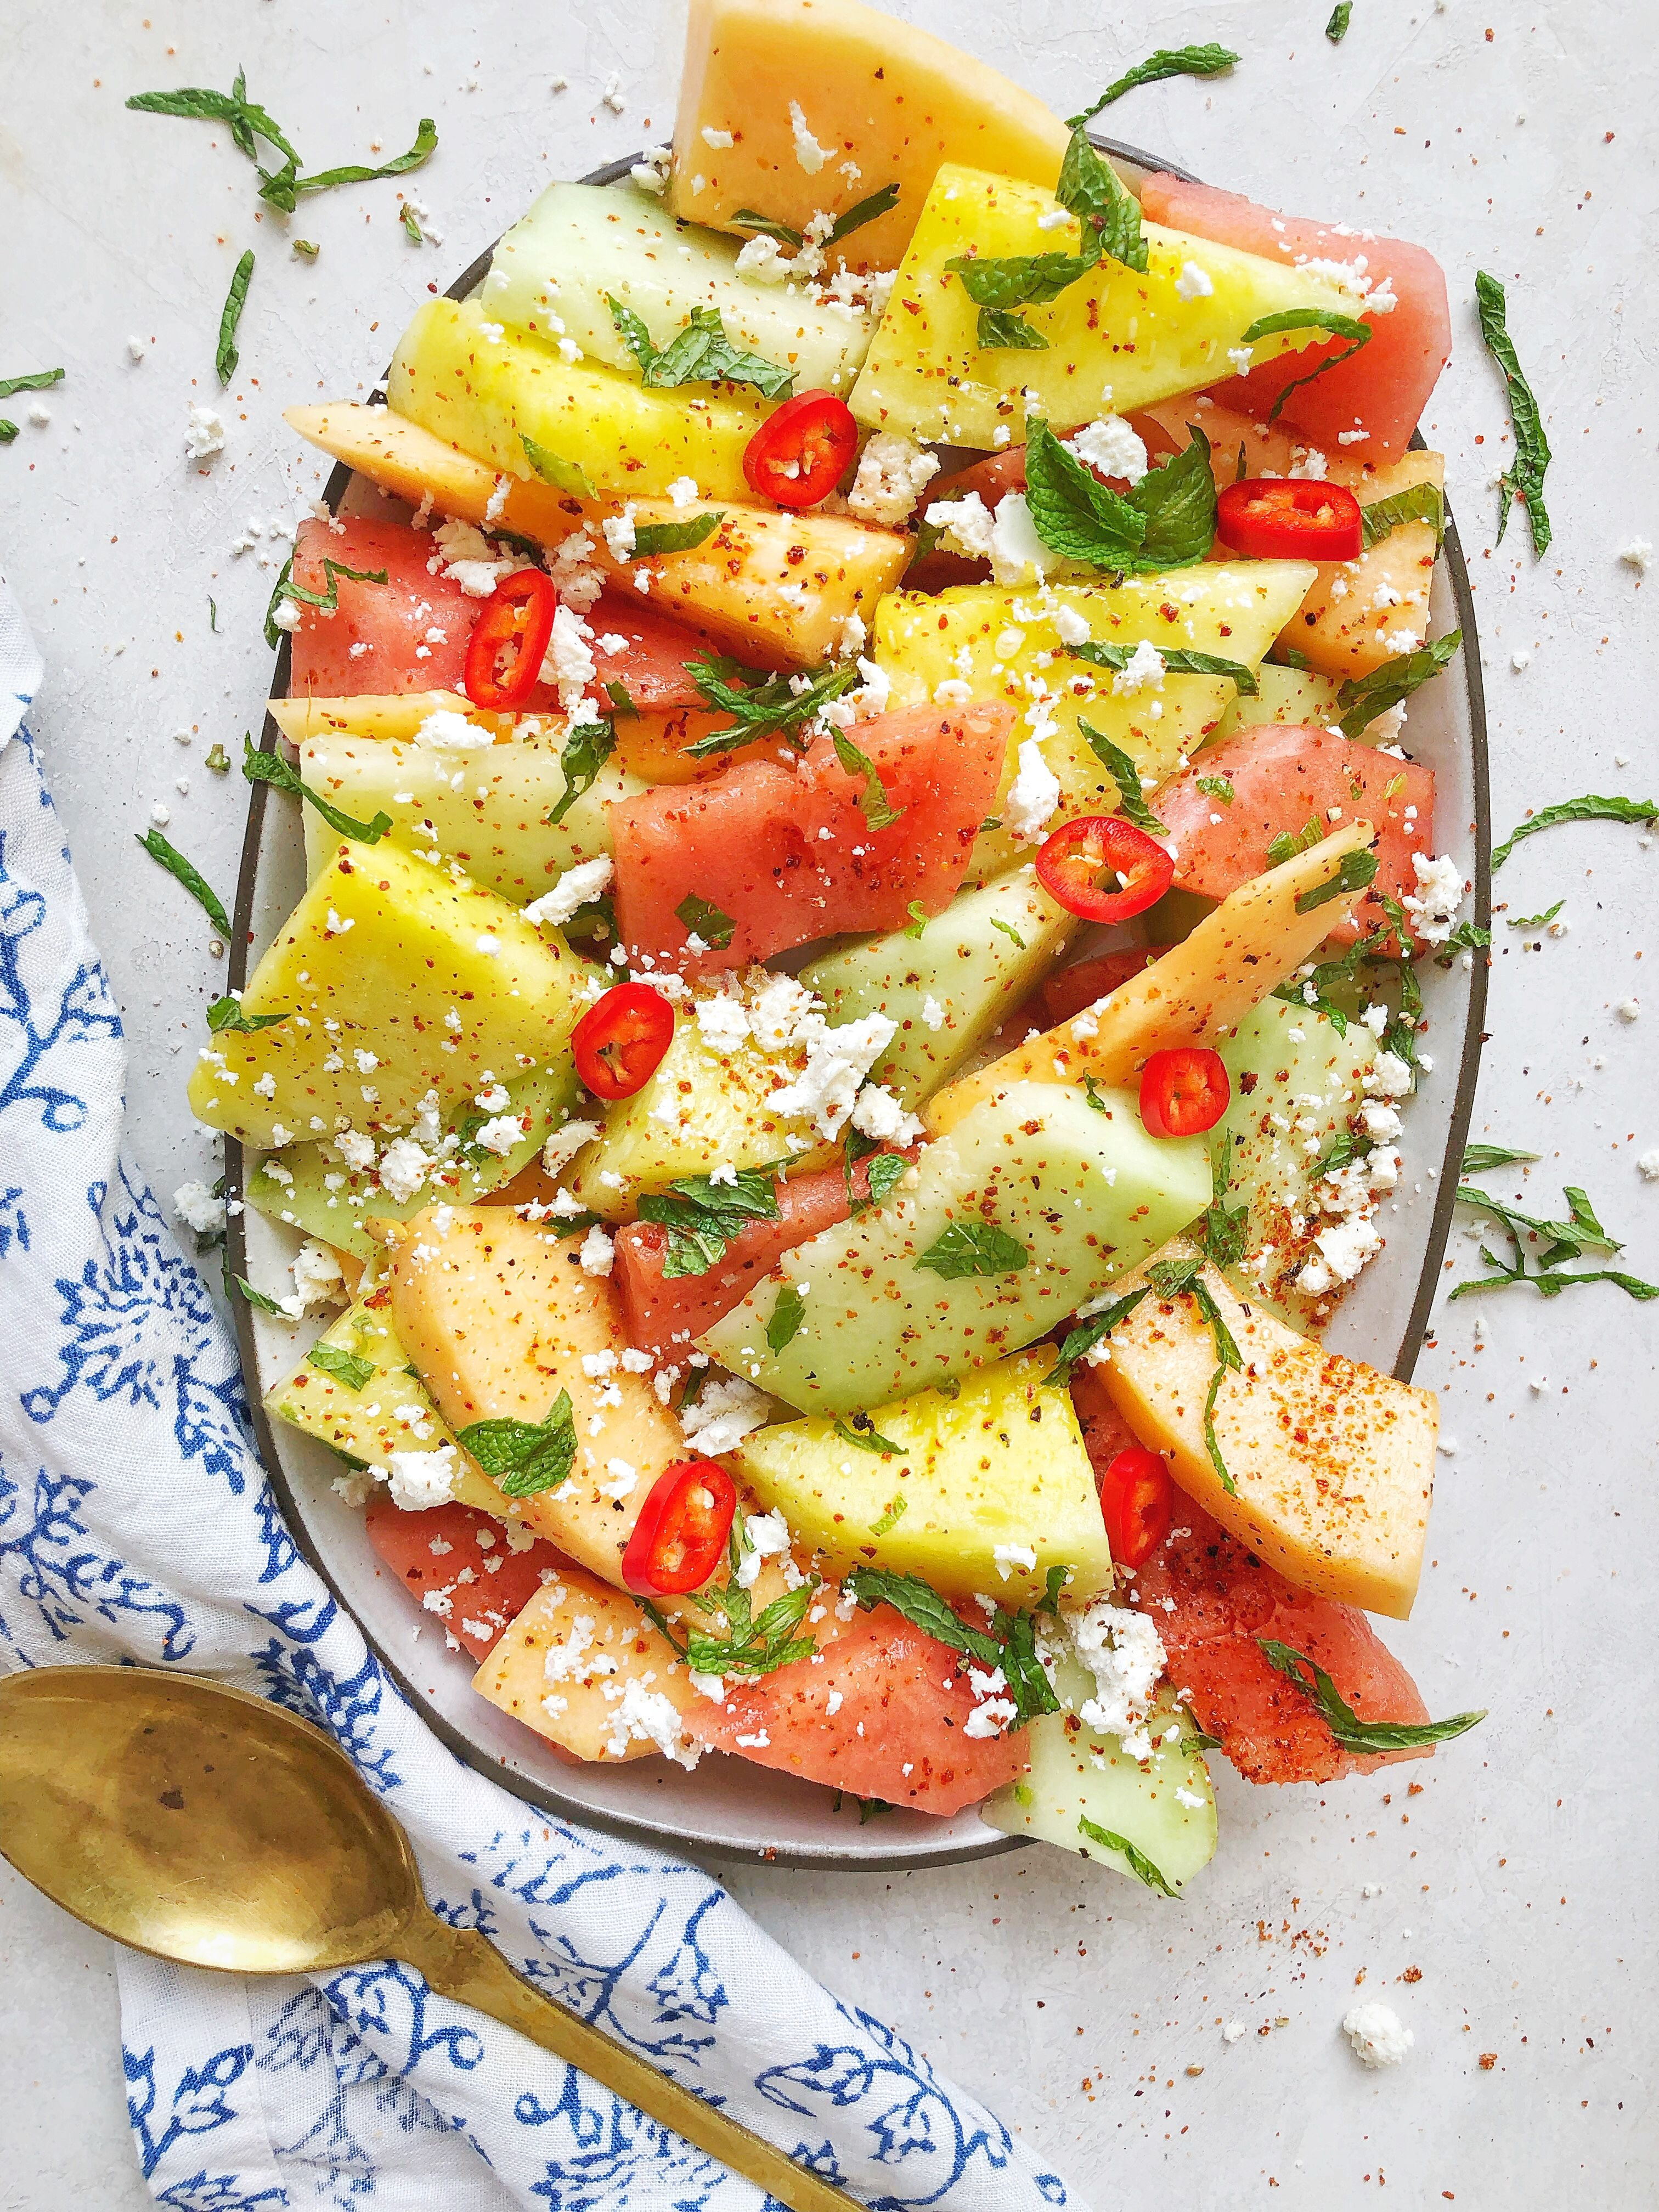 Mixed Melon Salad with Ricotta Salata, Chili Pepper, Lime and Mint